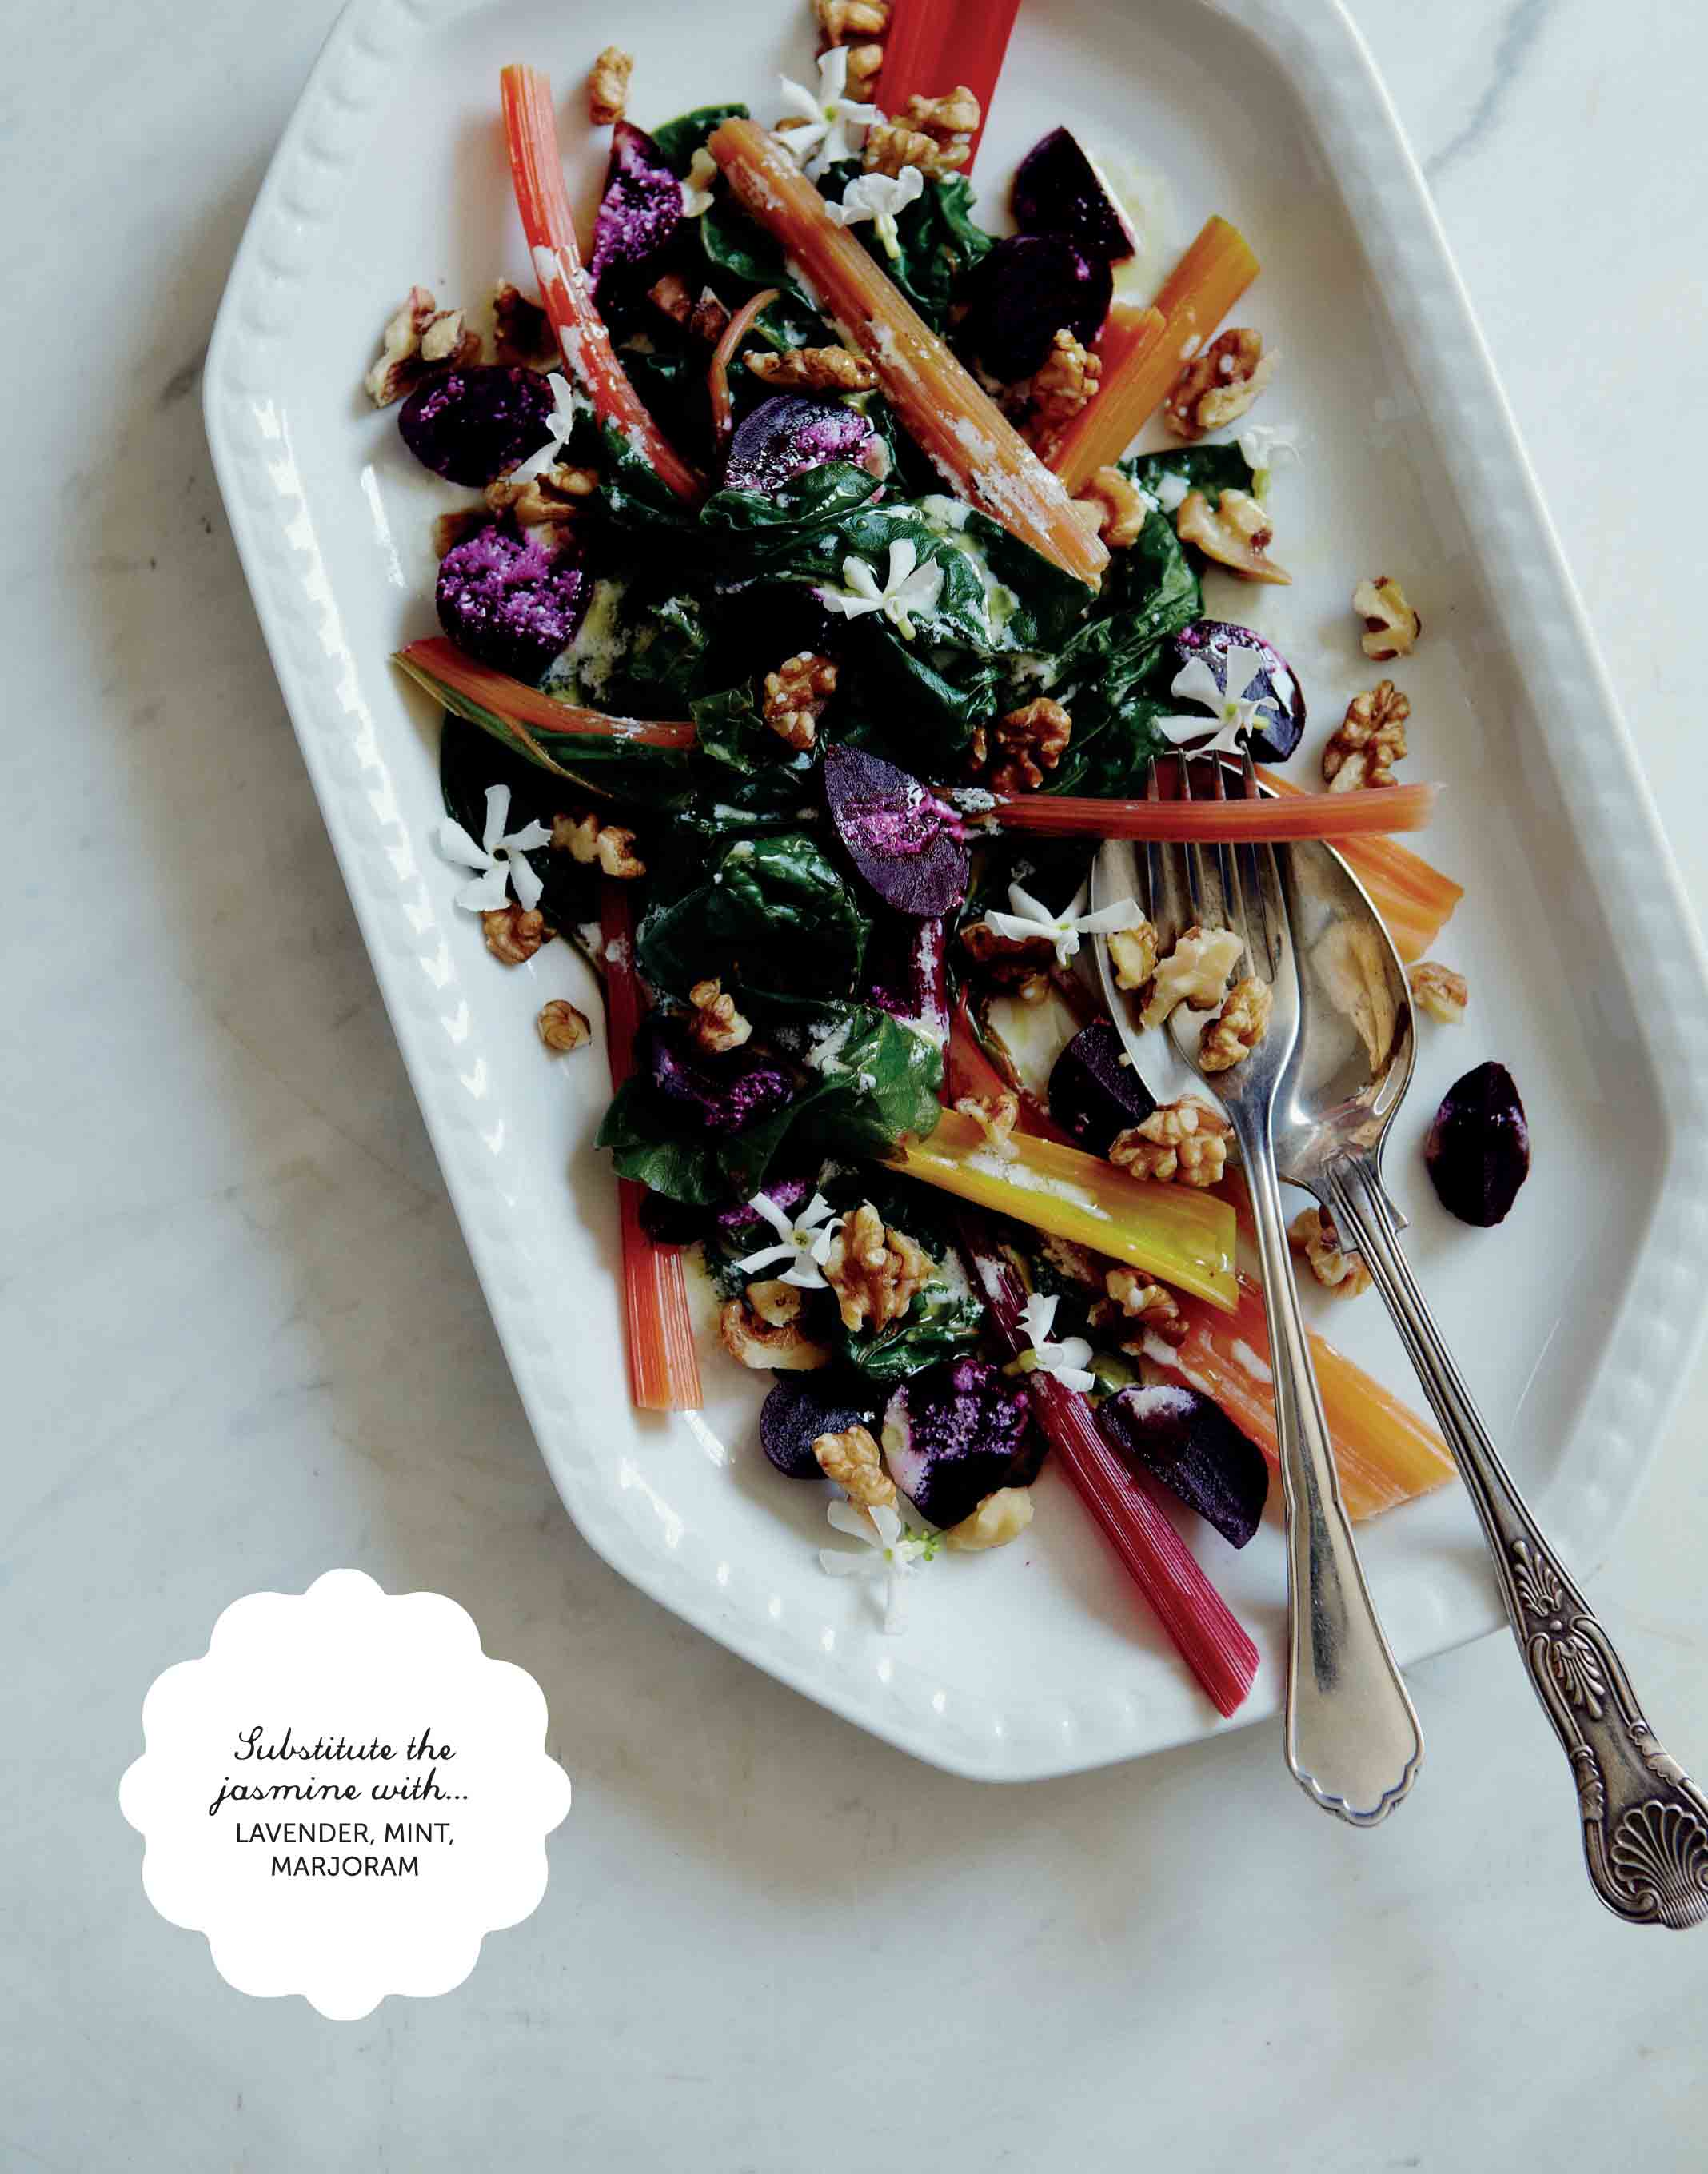 Rainbow chard salad with a jasmine dressing